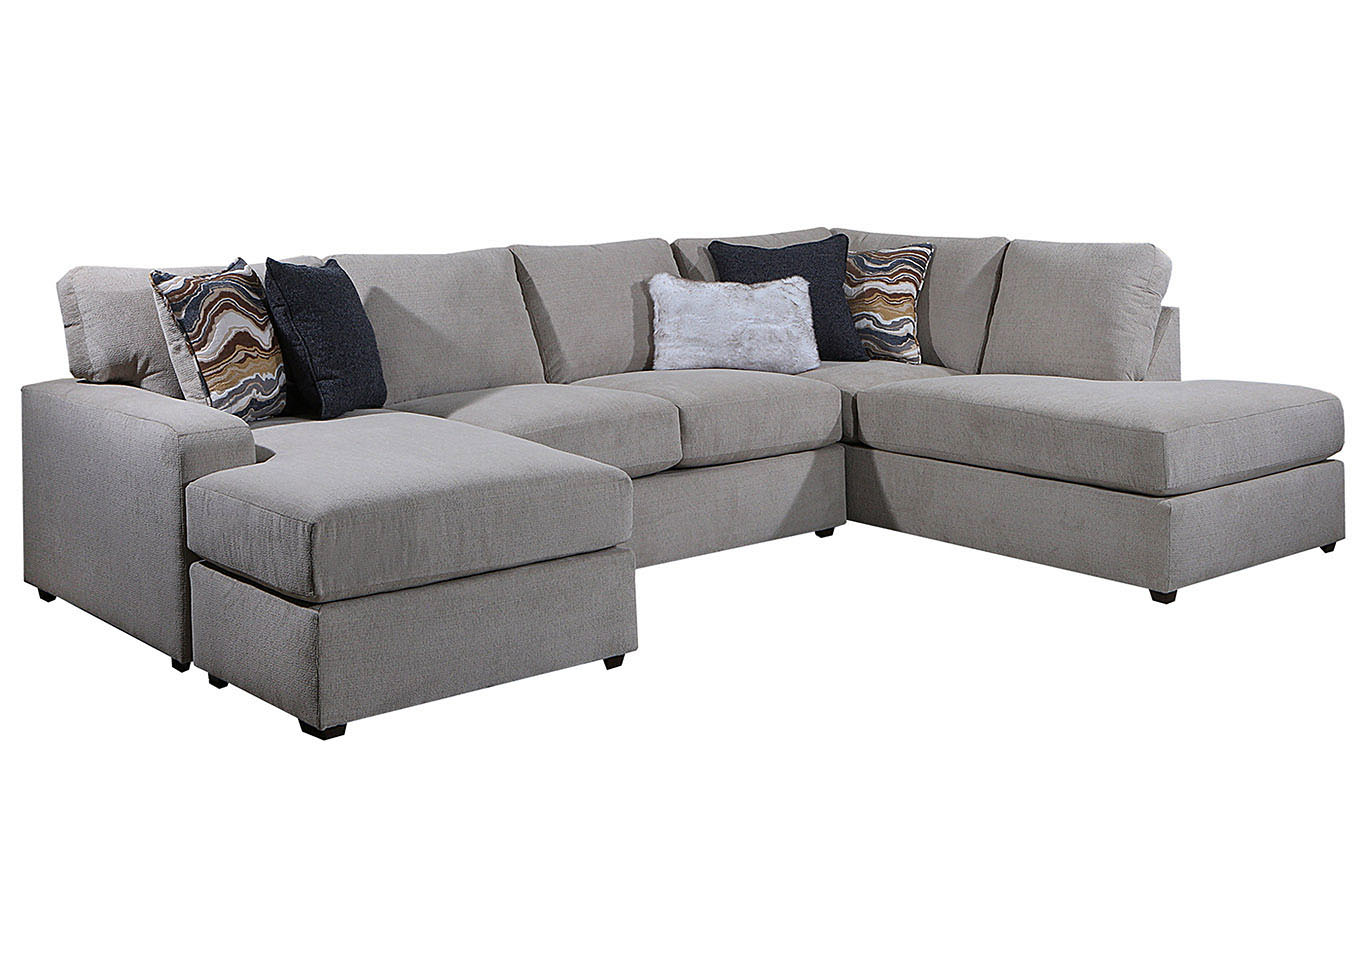 lane furniture 8011 double chaise sectional amplify beige